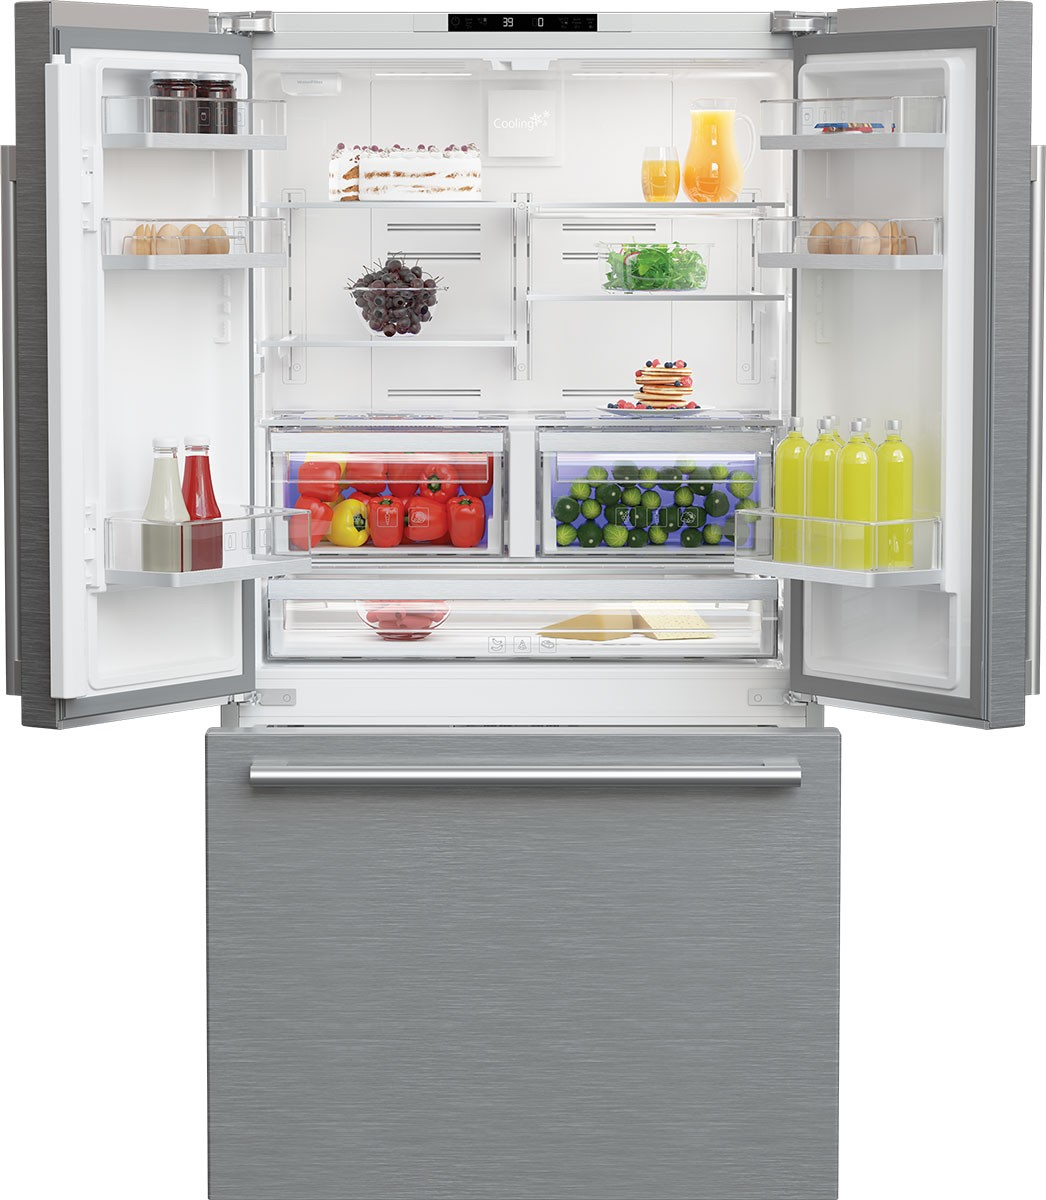 Model: BRFD2230SS | 36 Inch Counter Depth French Door Refrigerator